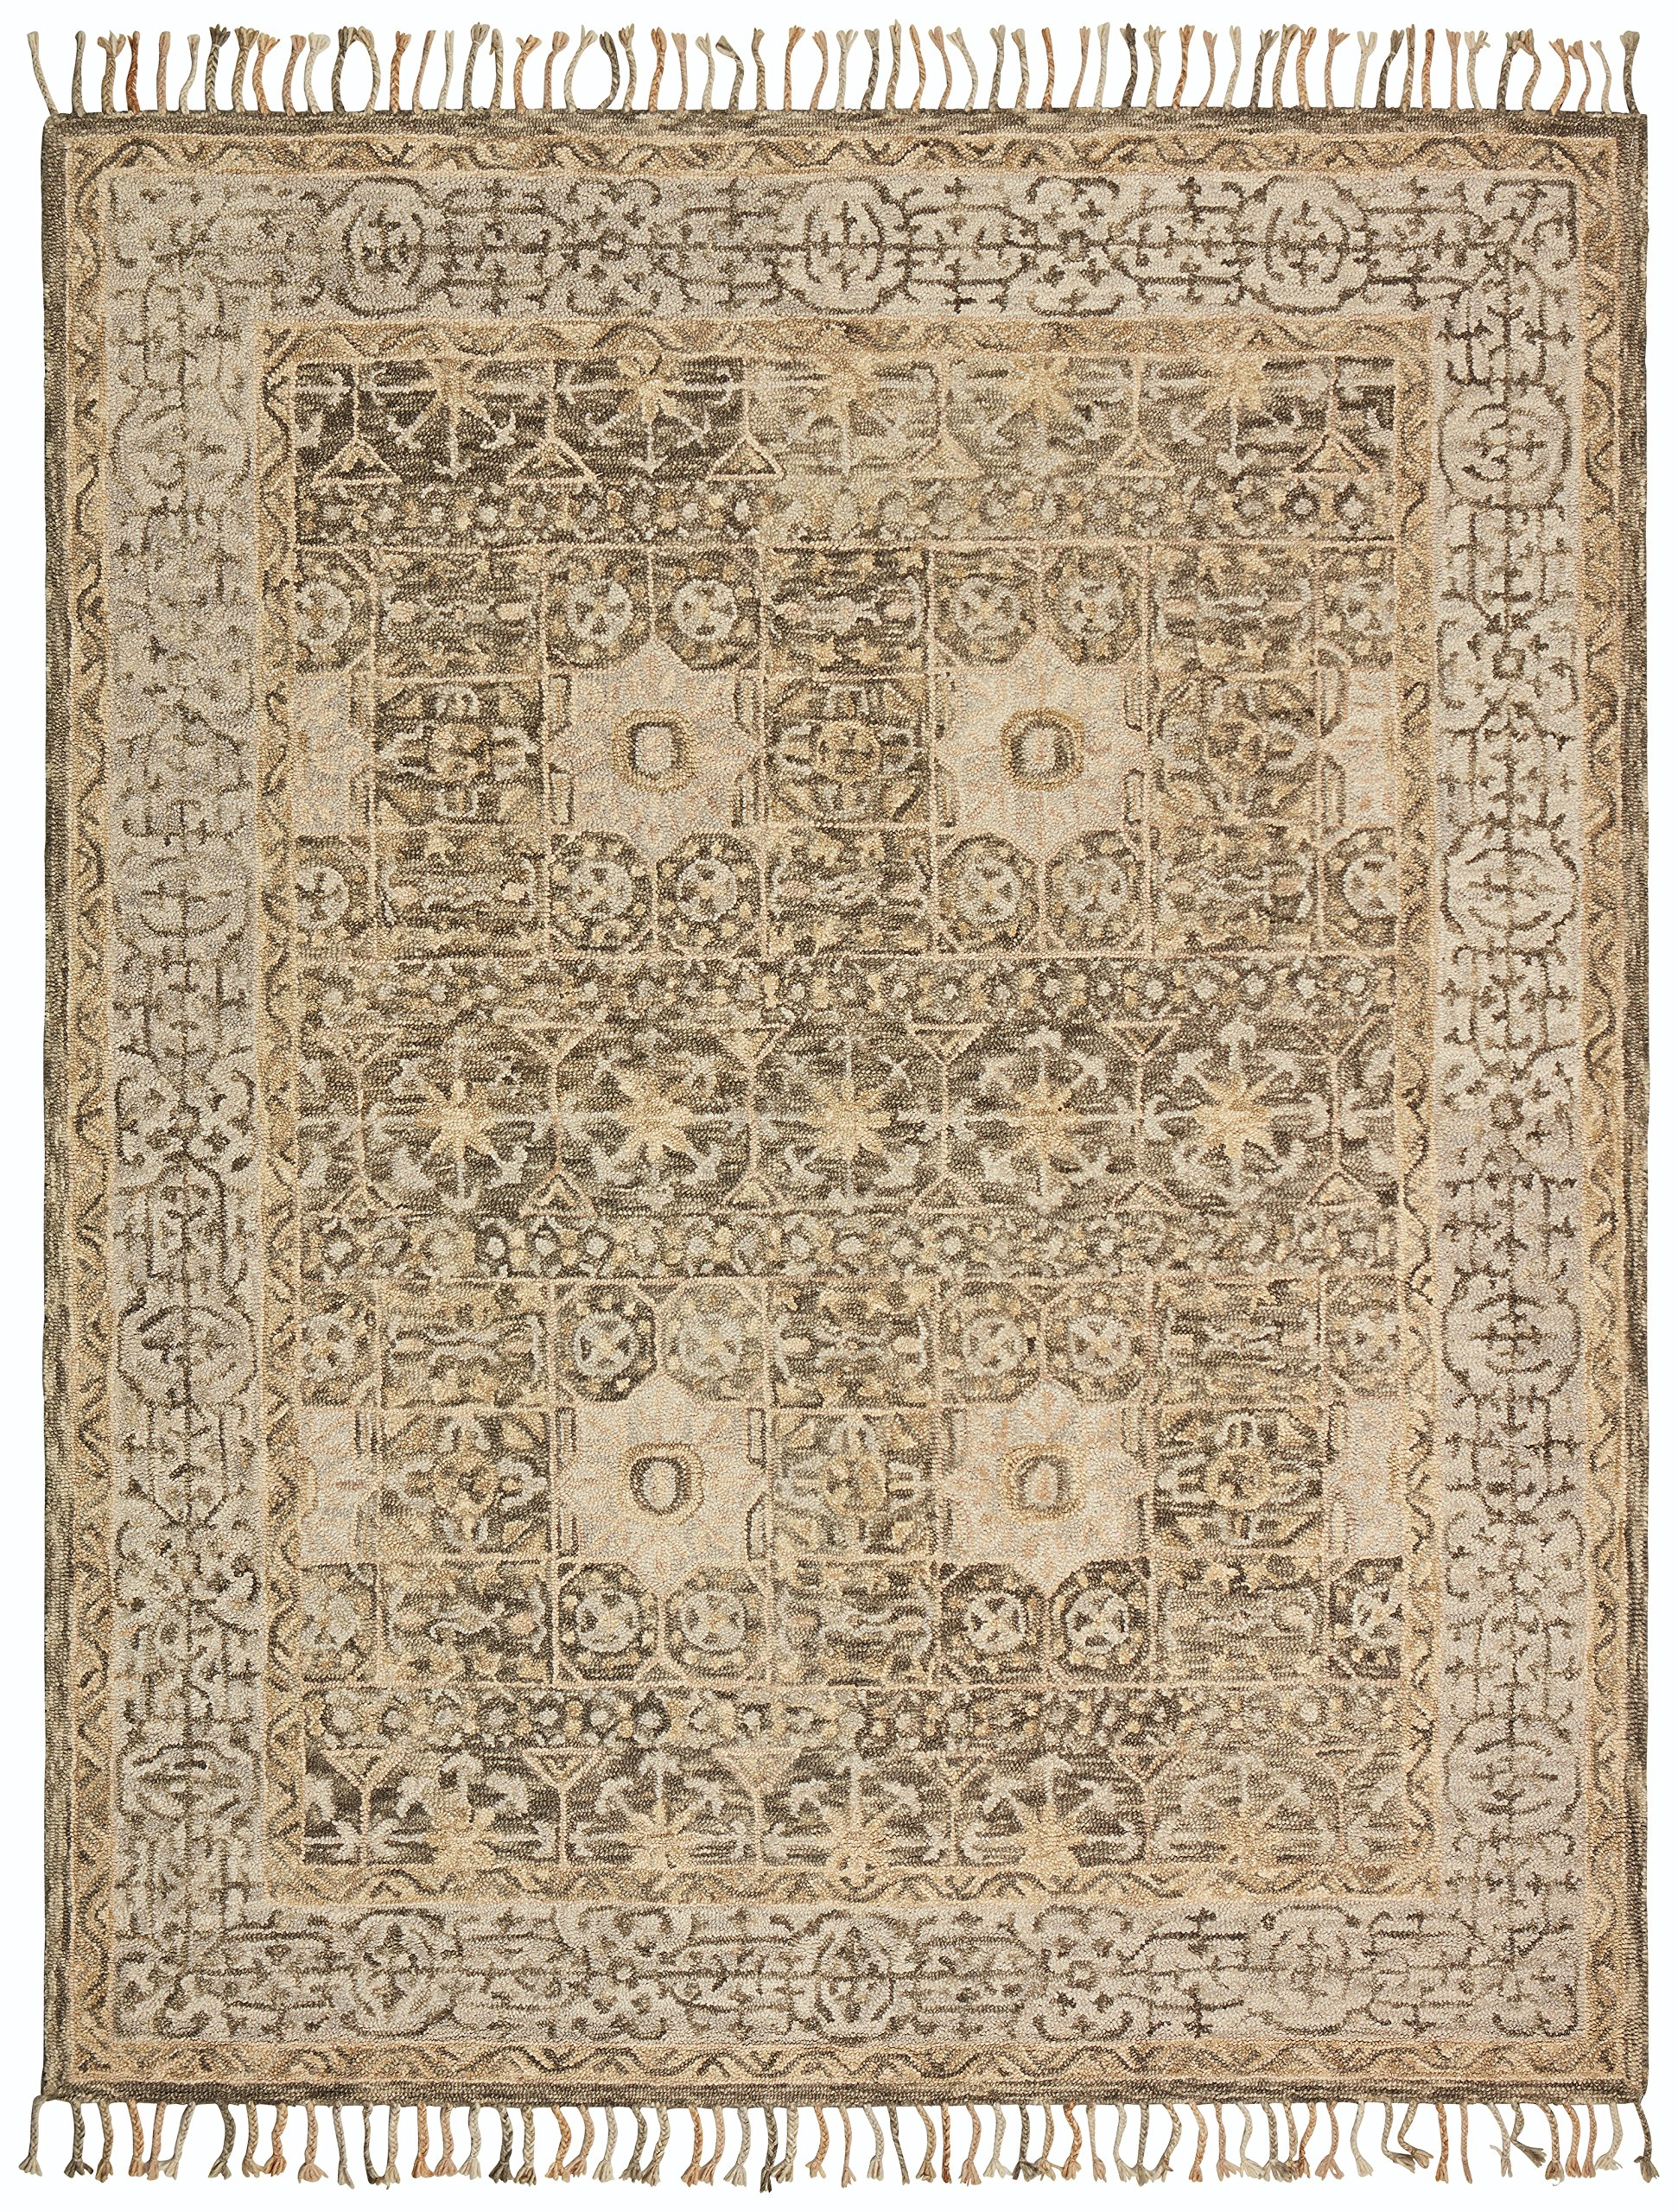 Stone & Beam Kelsea Transitional Wool Area Rug, 8' x 10', Beige and Grey by Stone & Beam (Image #1)